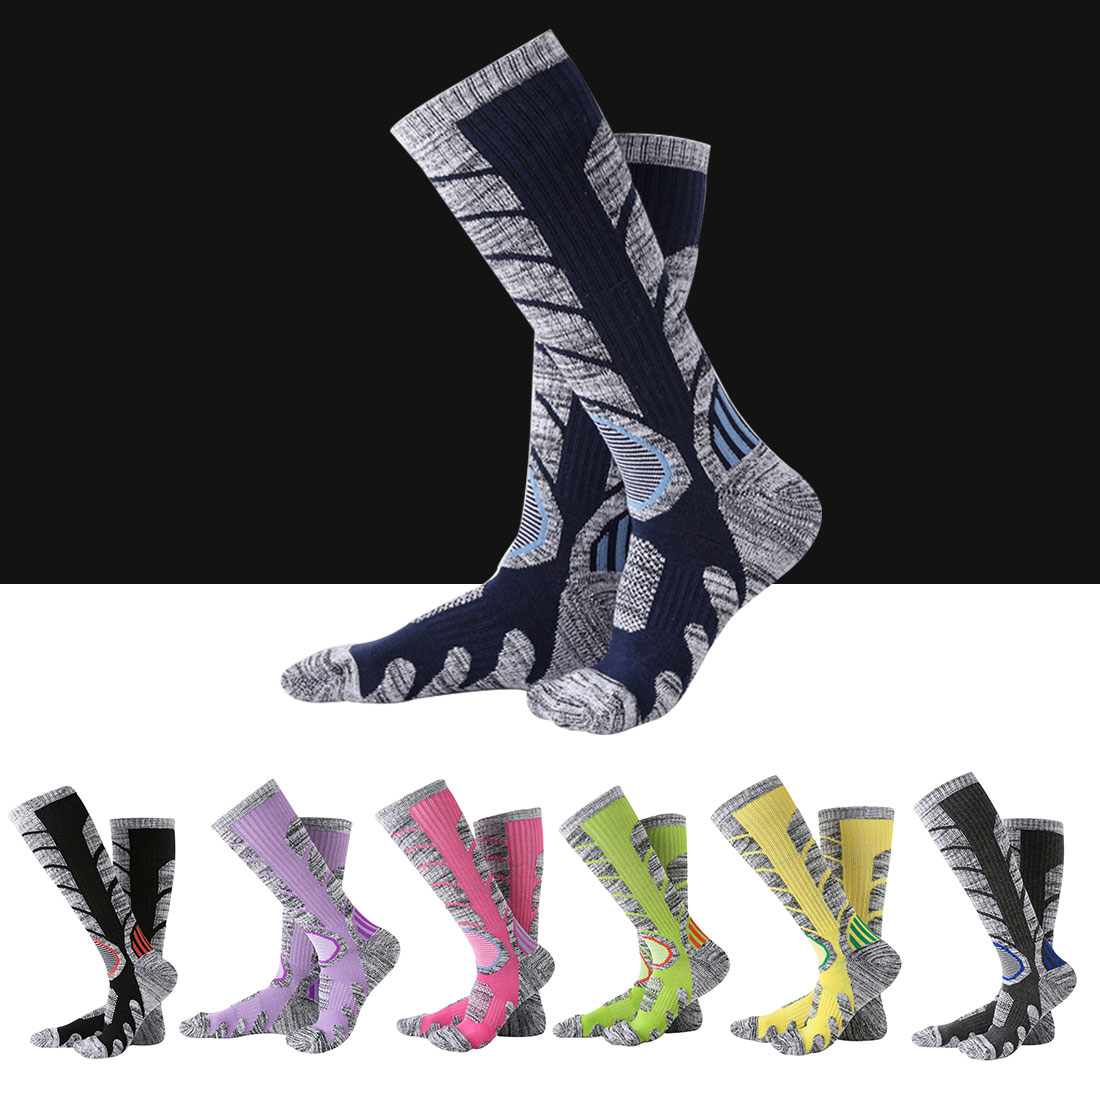 New Winter Warm Men Women Thermal Ski Socks Thick Cotton Sports Snowboard Cycling Skiing Soccer Socks Leg Warmers Long Socks